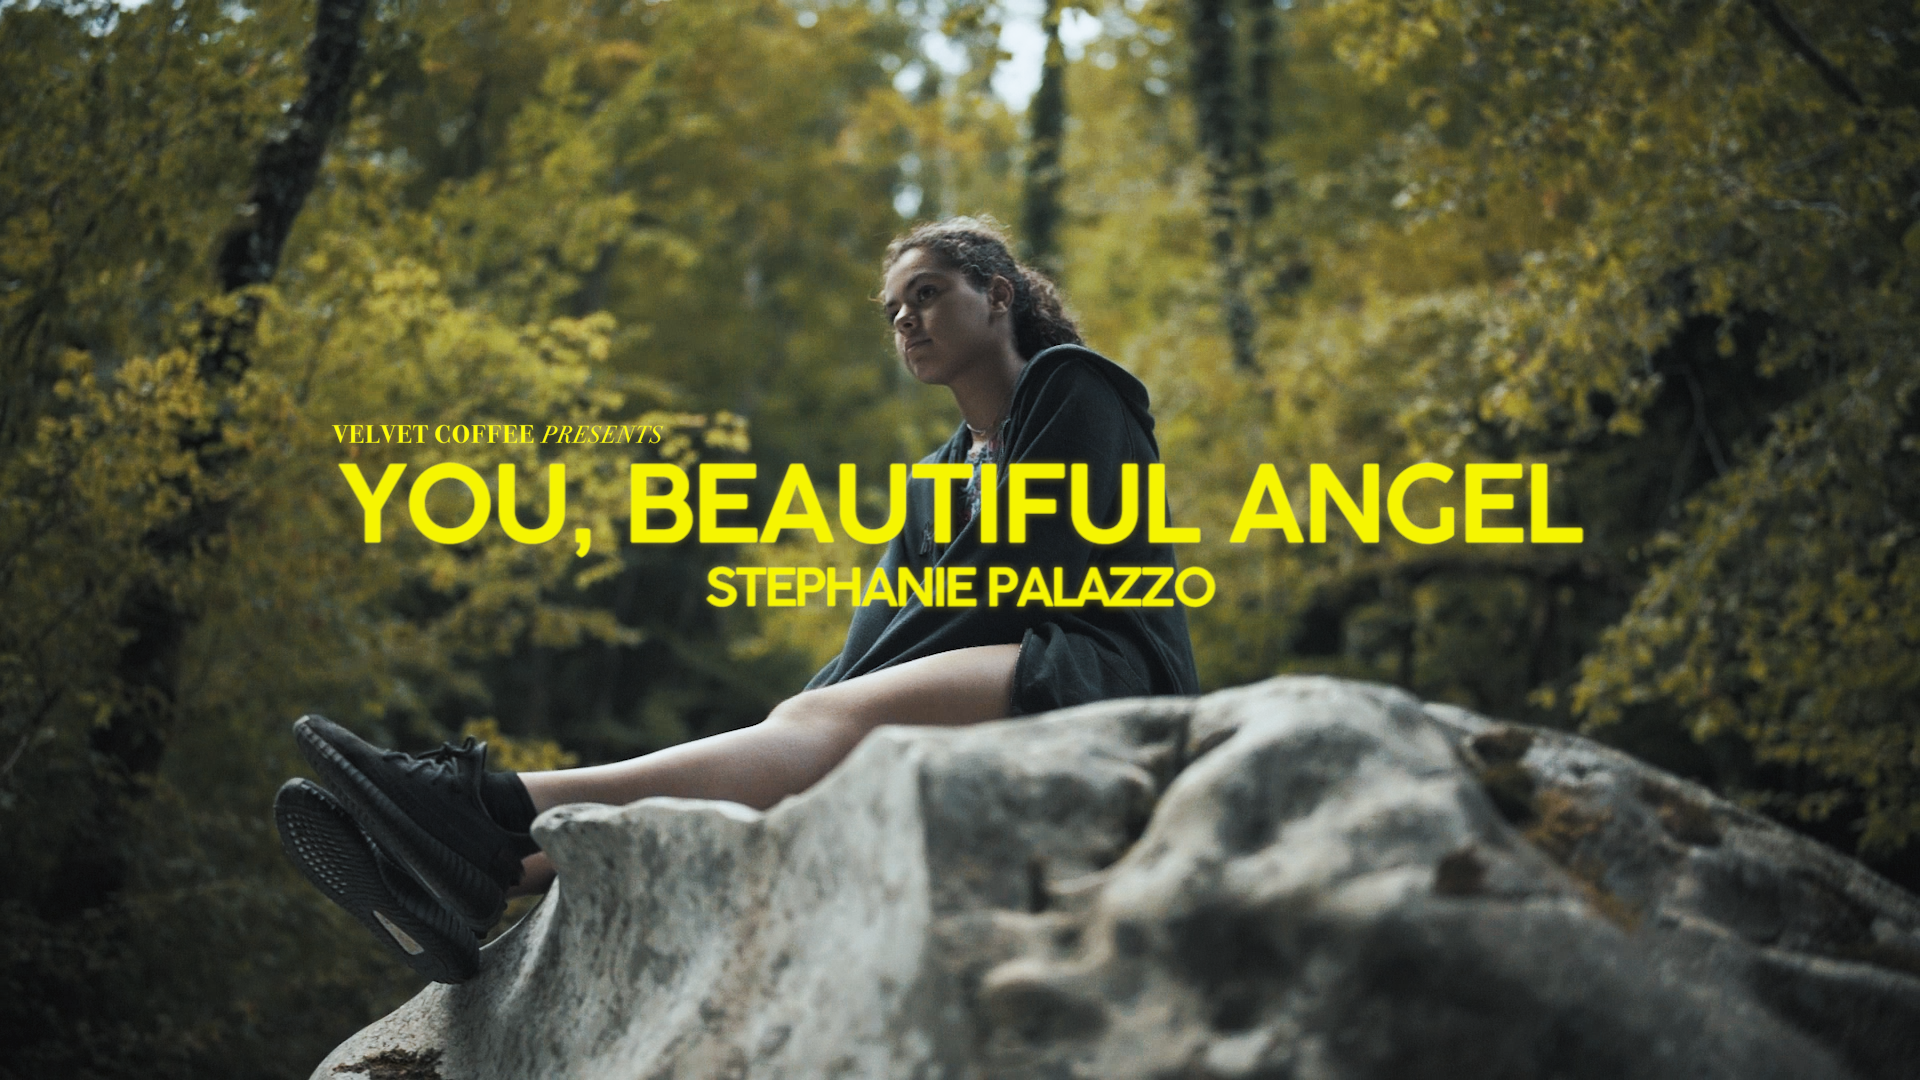 ✨ You, Beautiful Angel - le Clip 💛